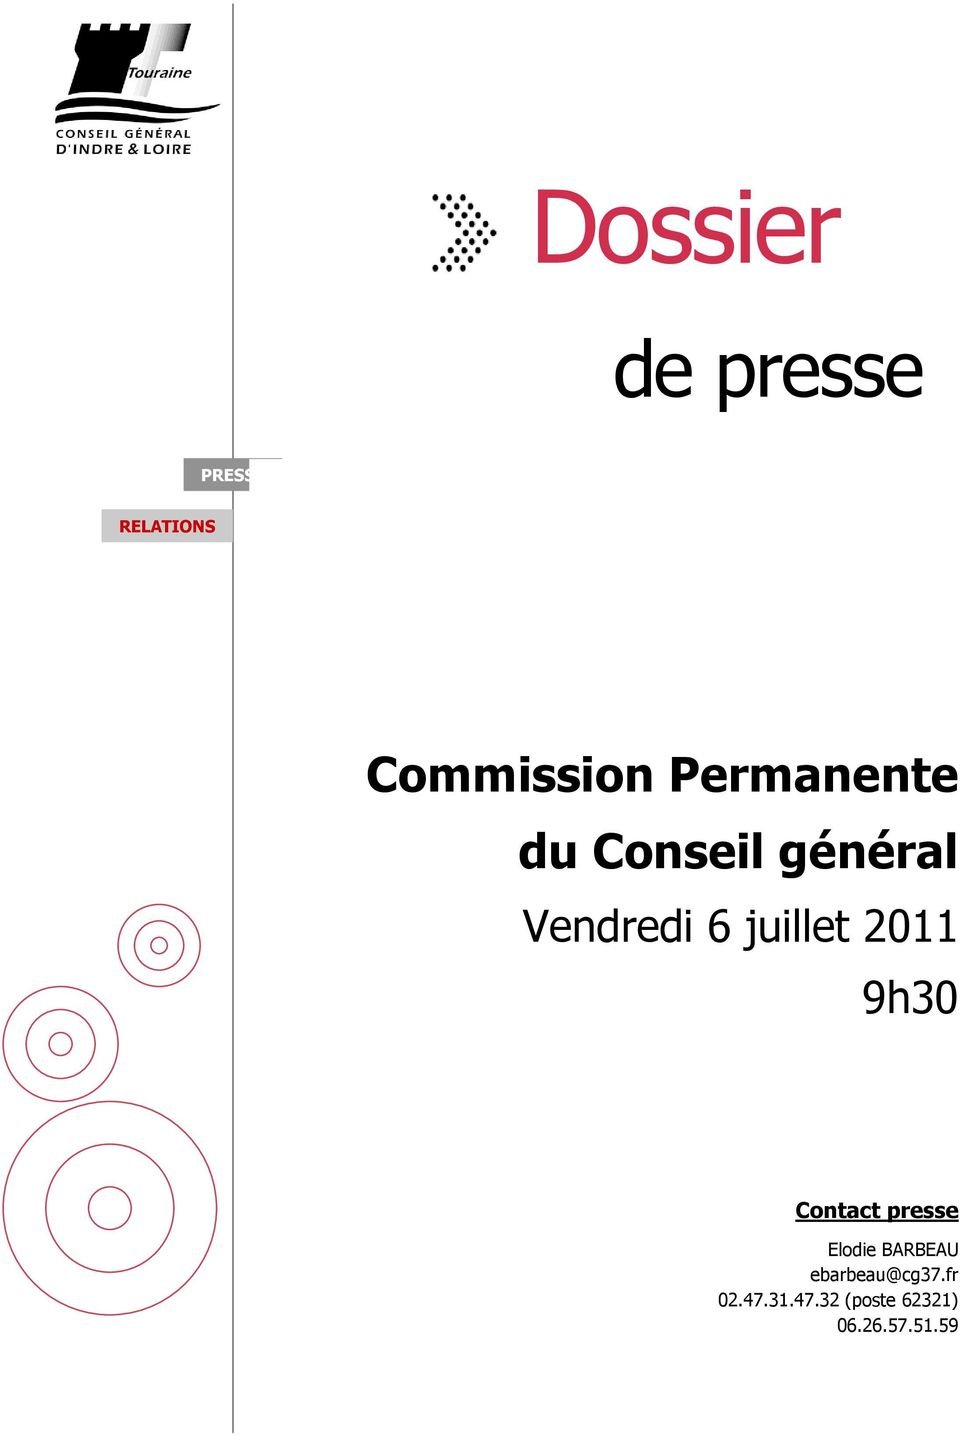 2011 9h30 Contact presse Elodie BARBEAU